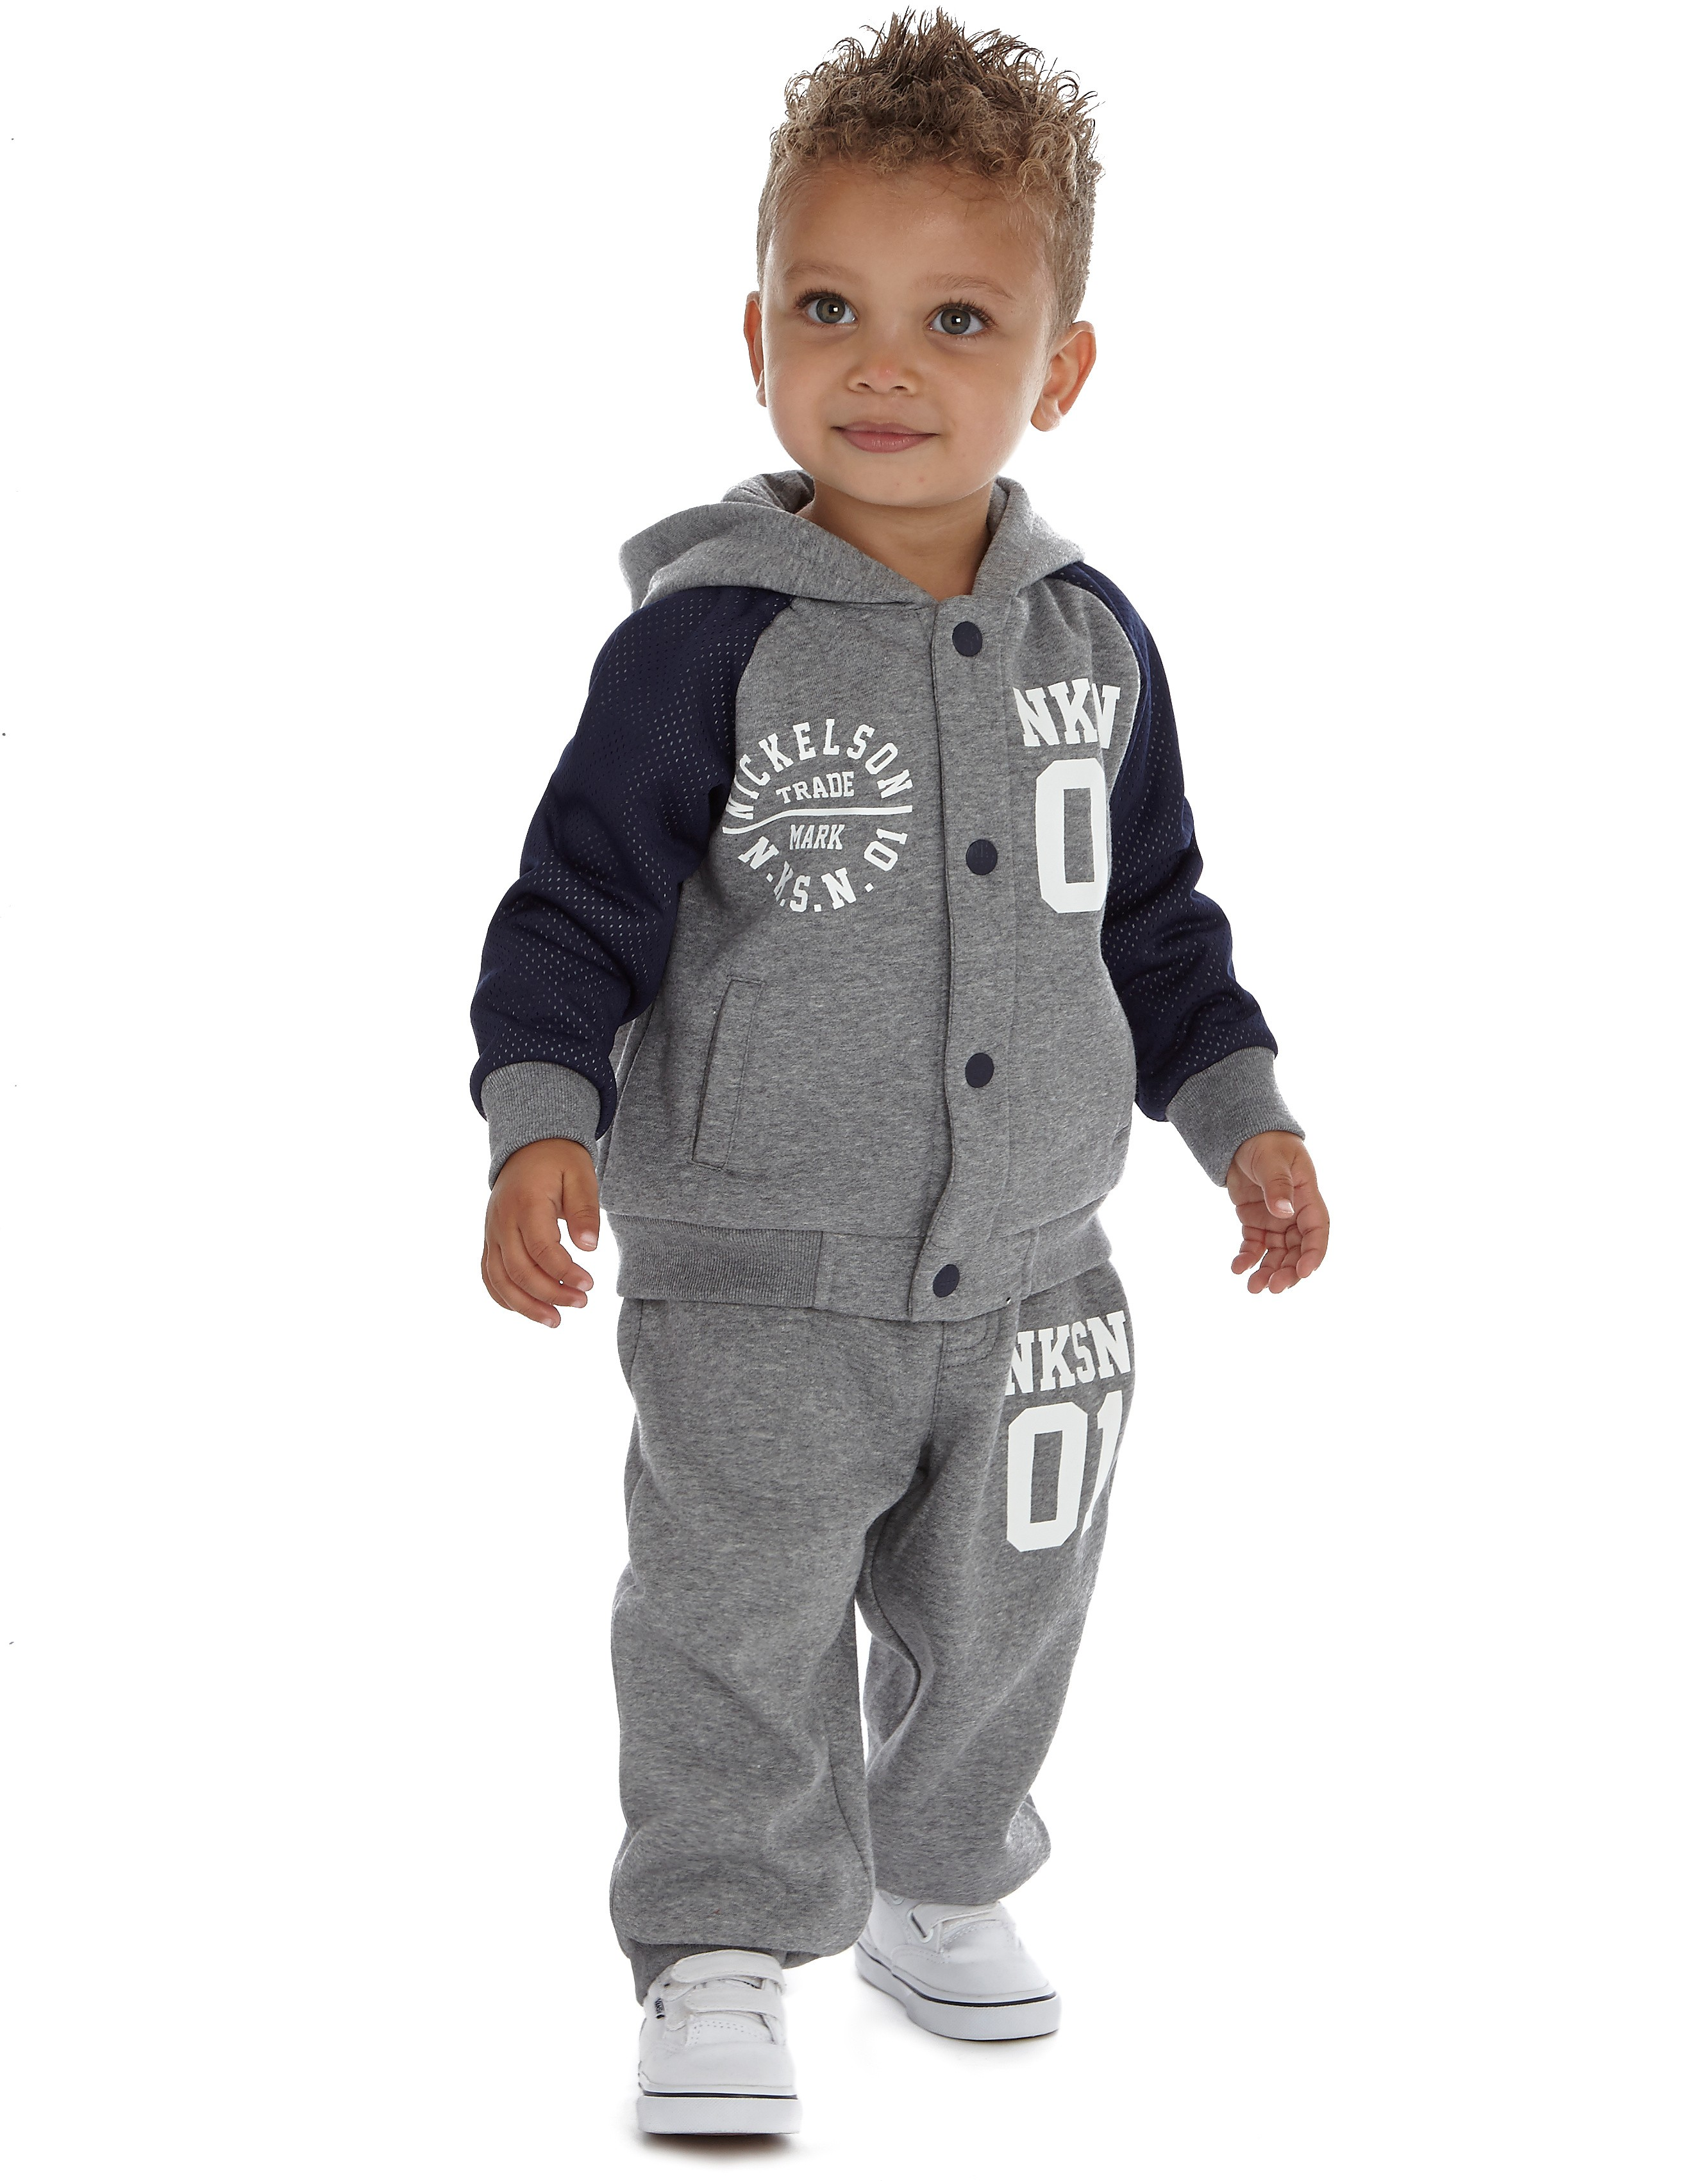 Nickelson Max Mesh Sleeve Suit Infant